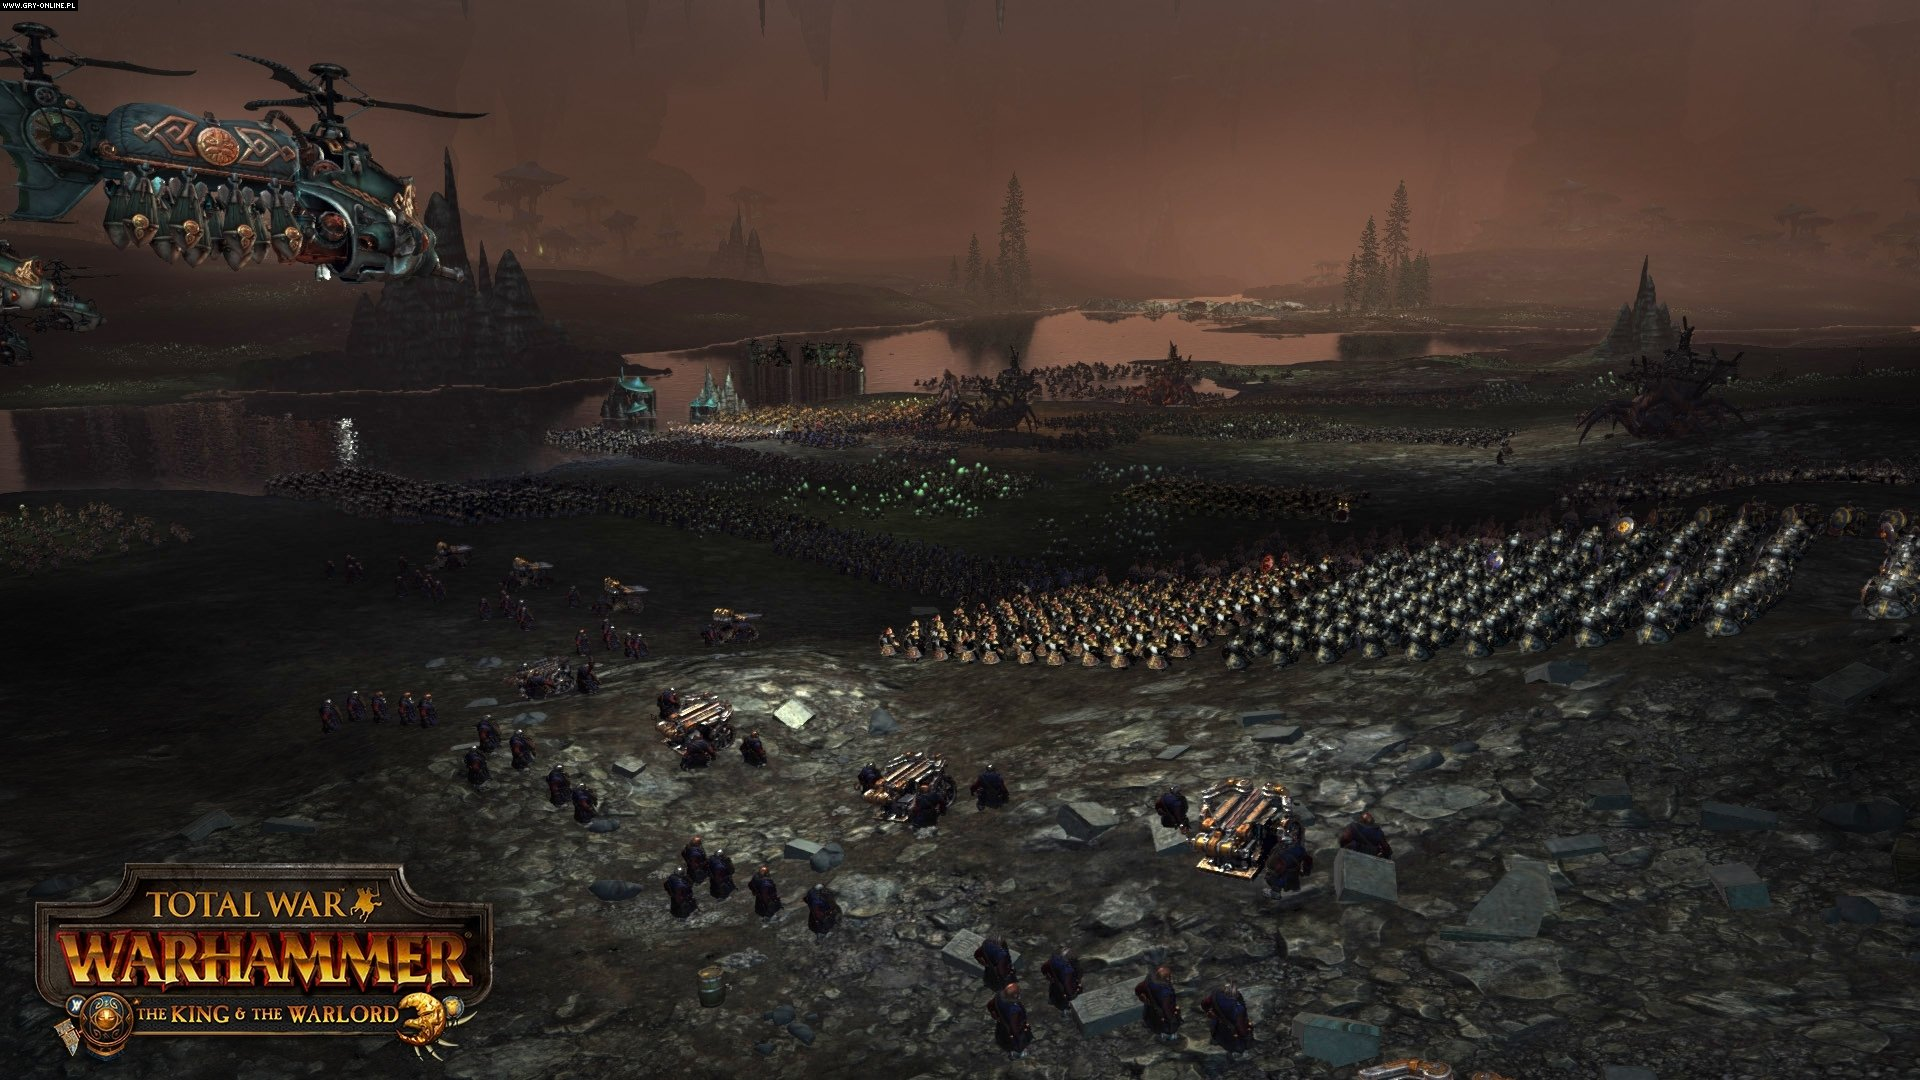 Total War: Warhammer PC Gry Screen 9/106, Creative Assembly, SEGA